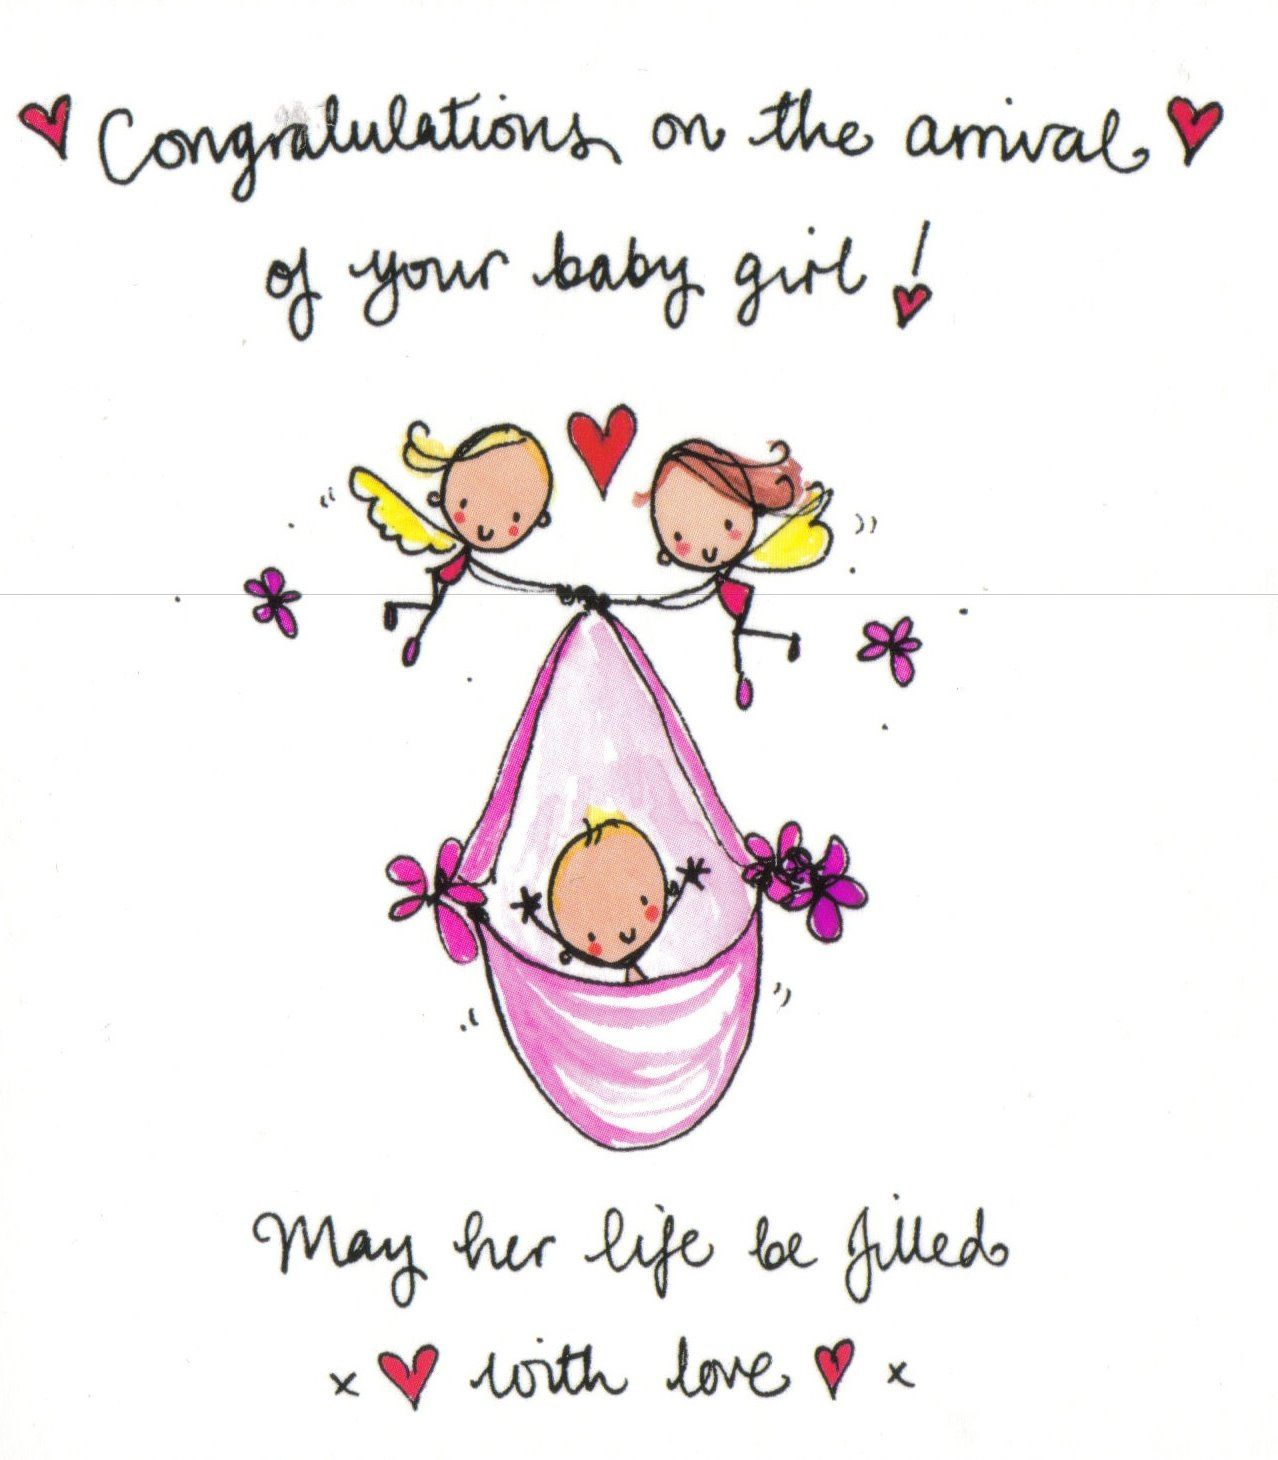 Juicy Lucy New Arrival Girl1 Greetings Blessings Pinterest